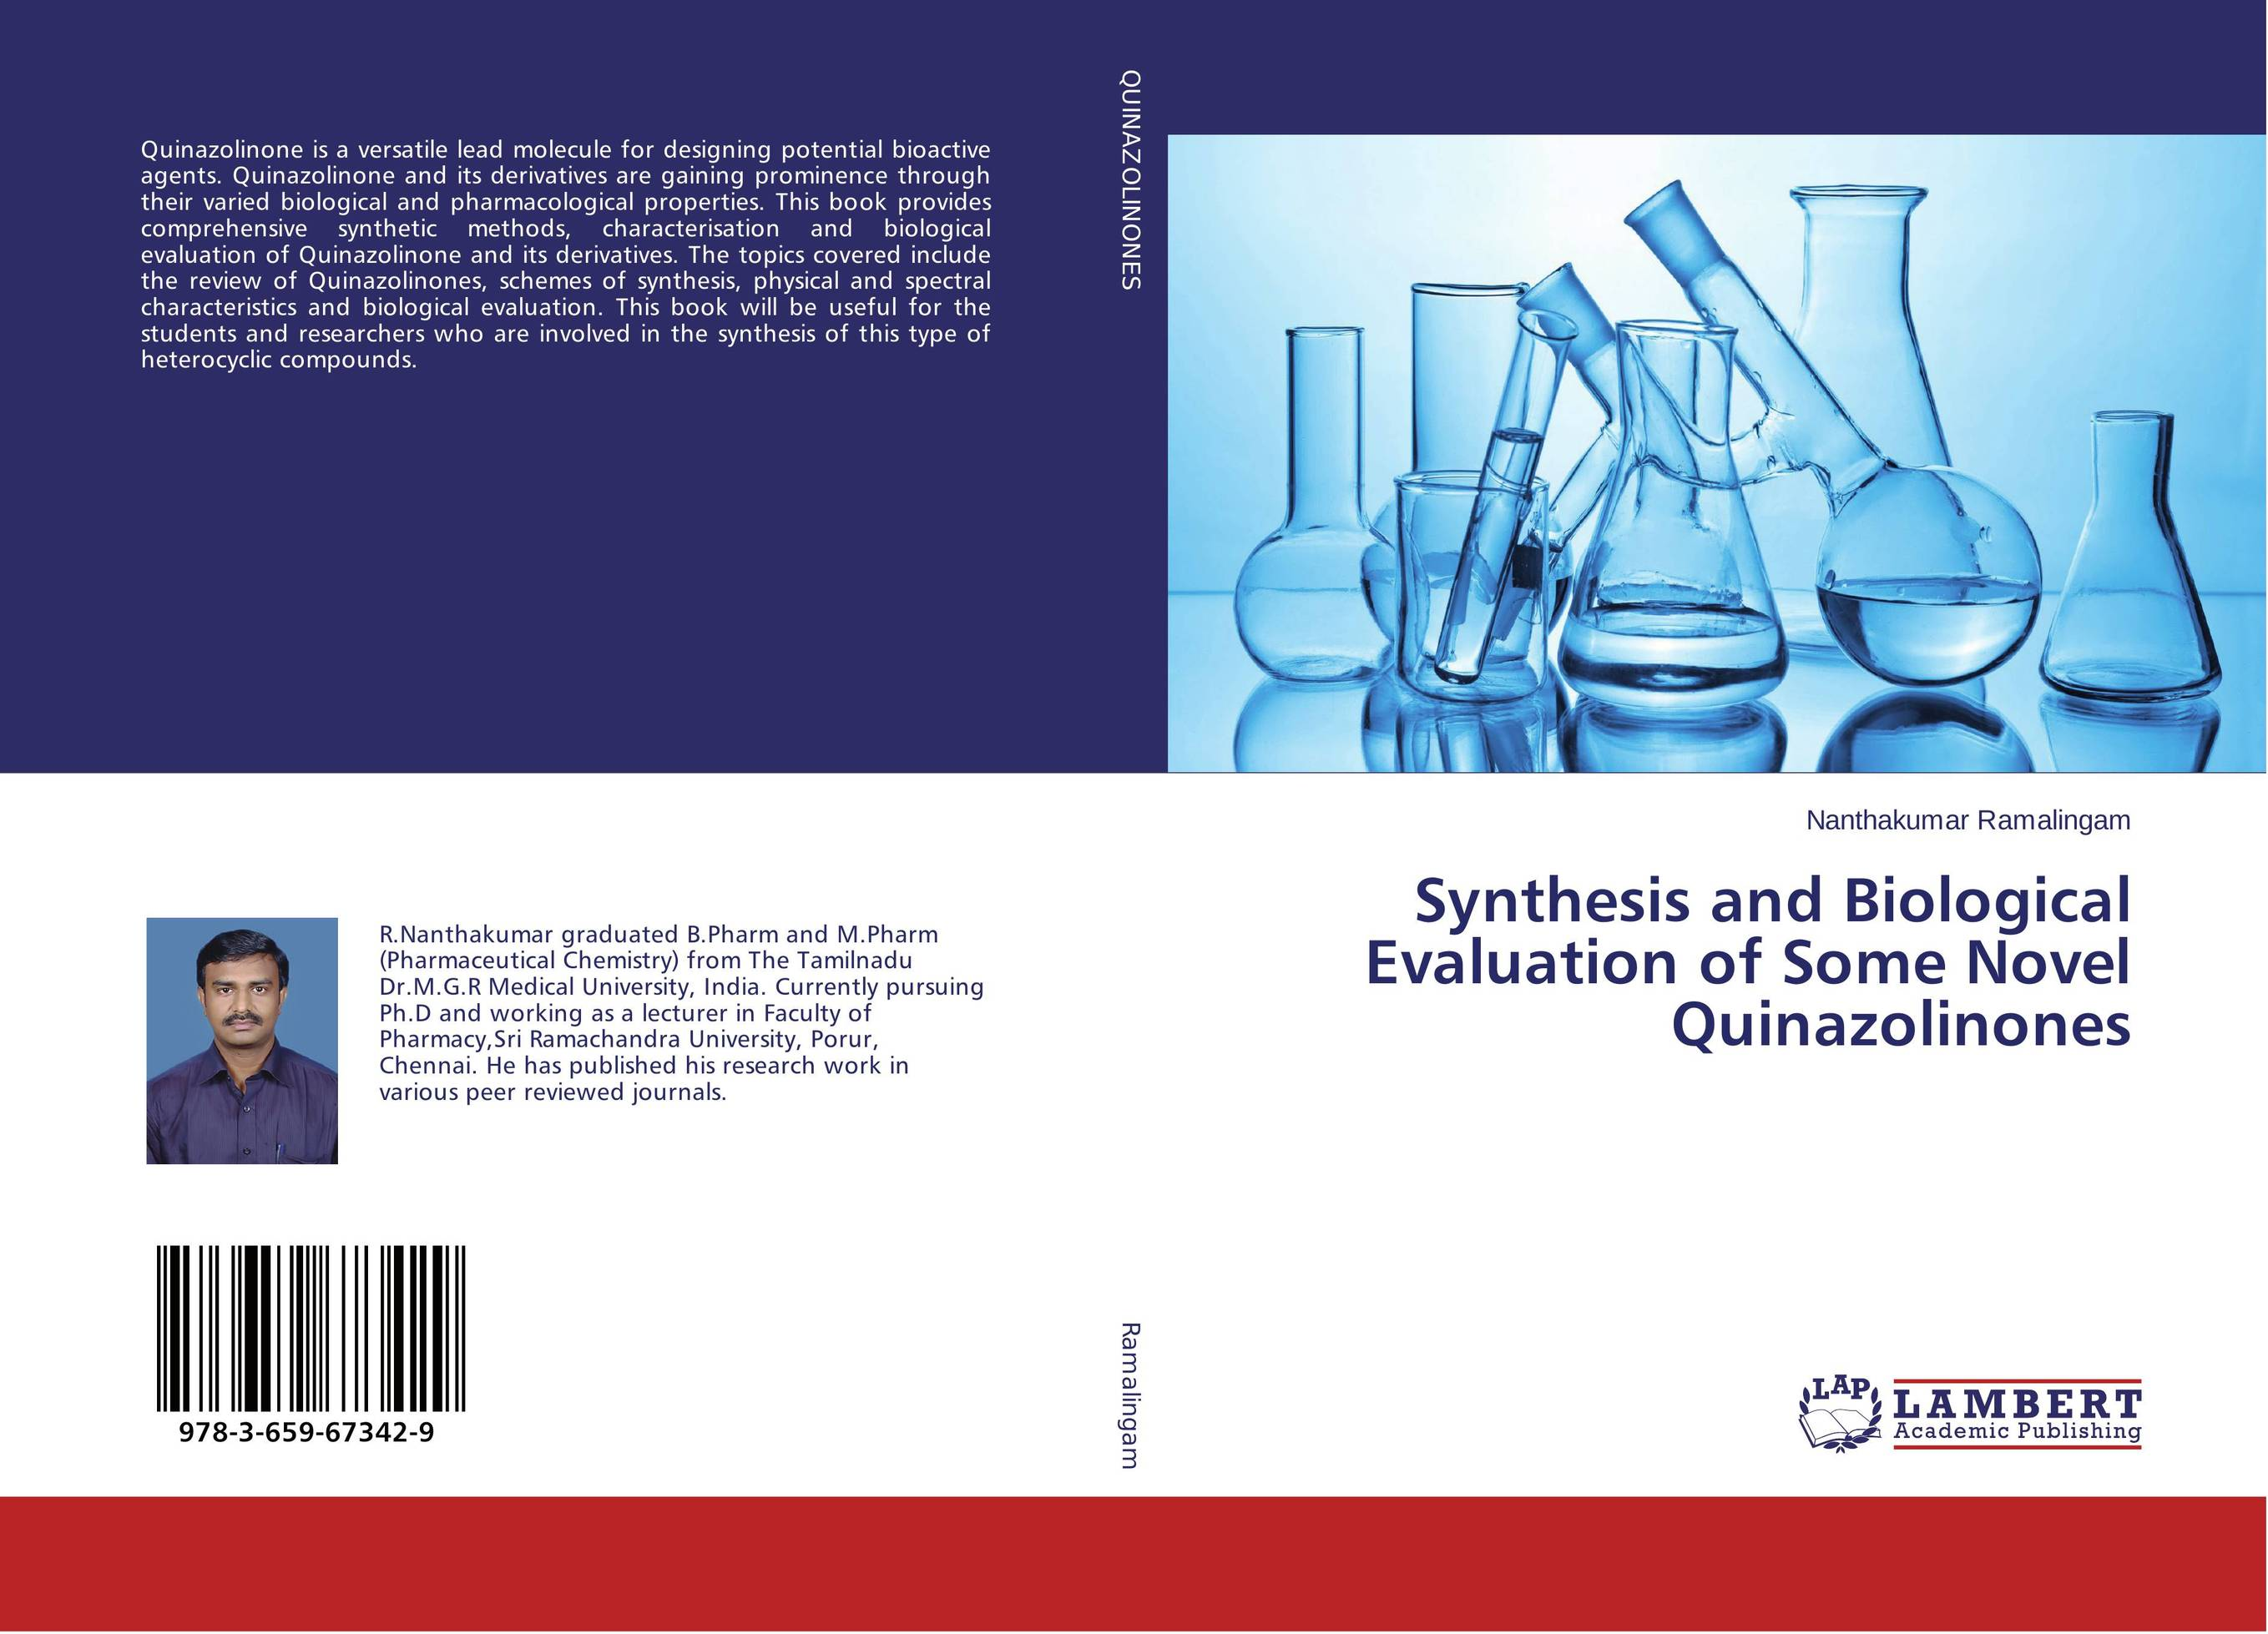 Synthesis and Biological Evaluation of Some Novel Quinazolinones revathi arun gupta and s g kaskhedikar synthesis evaluation and qsar study of antitubercular agents